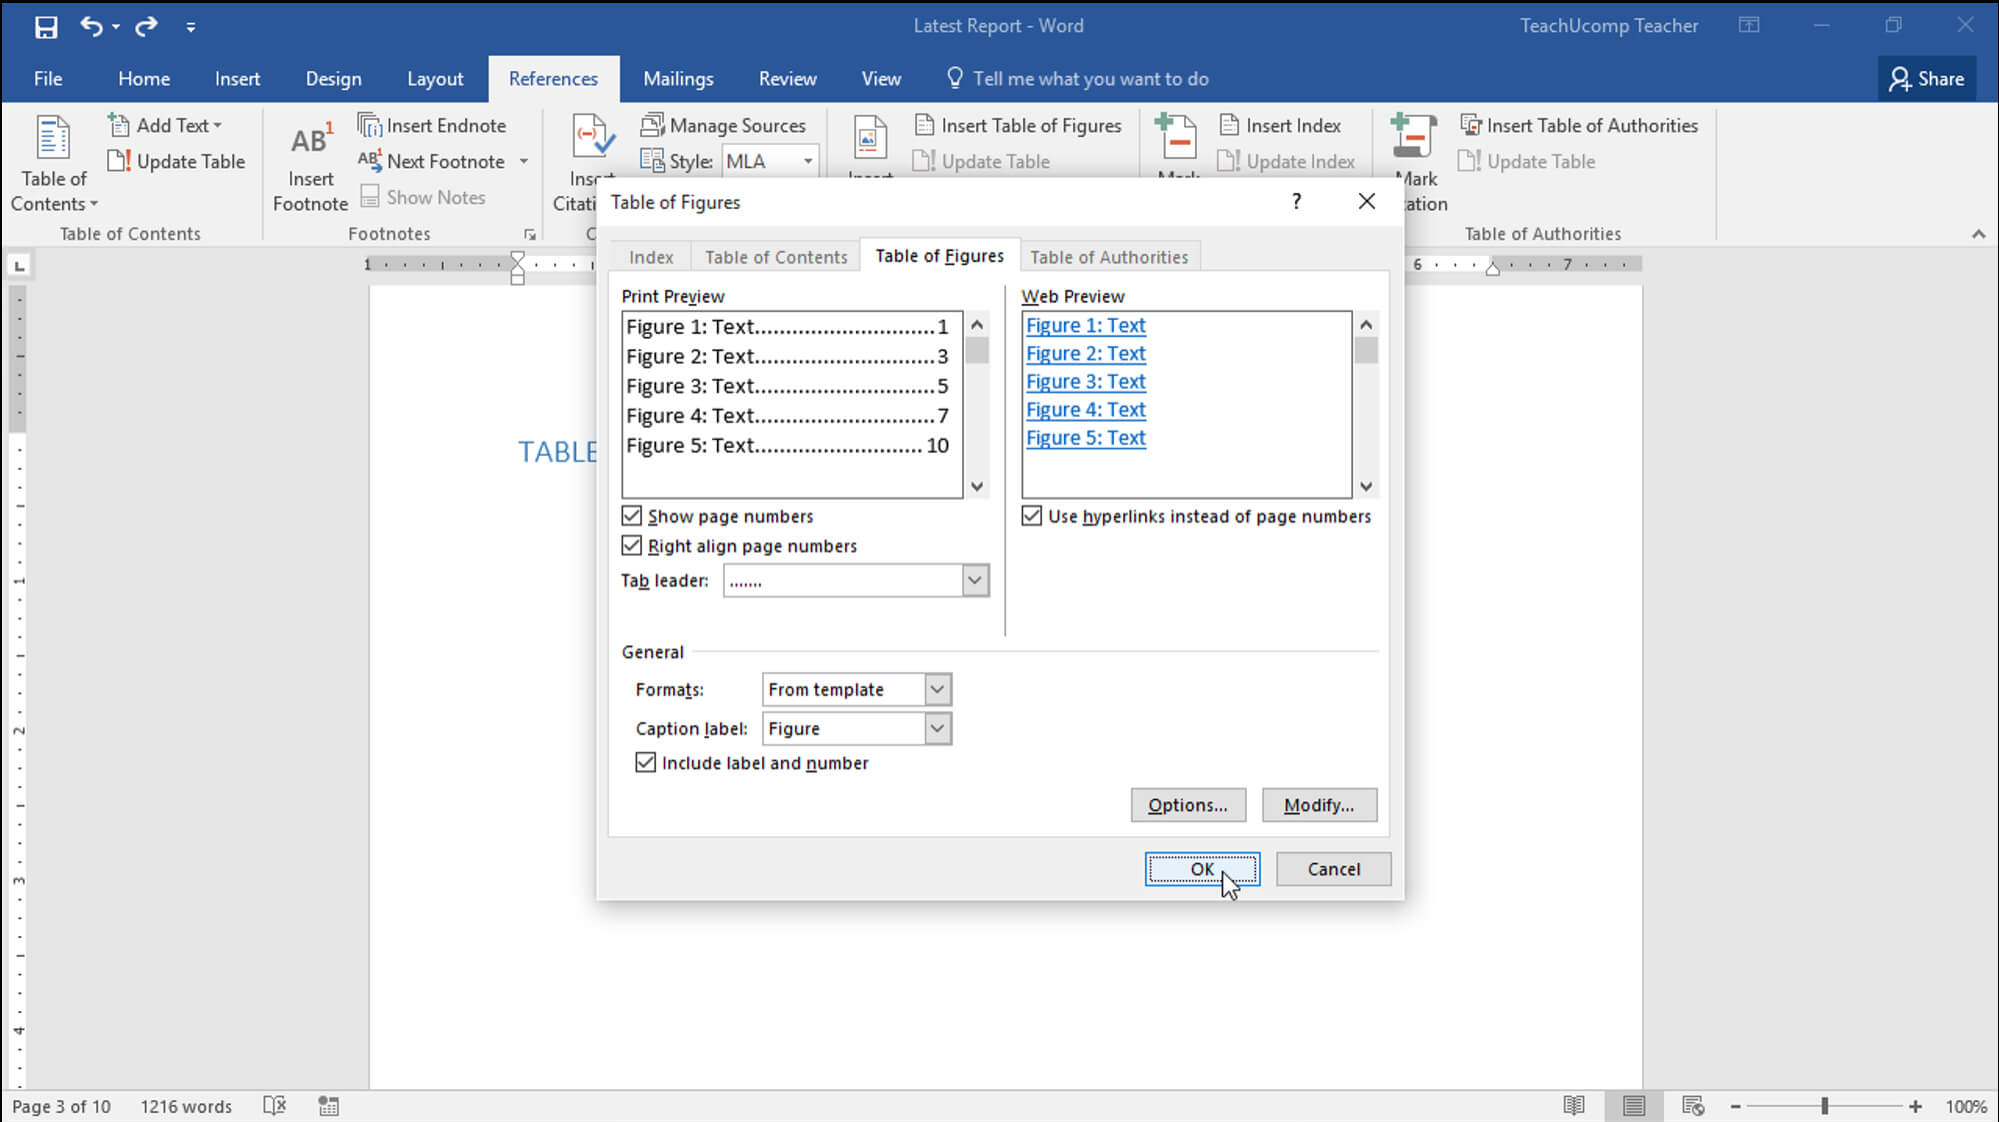 Insert A Table Of Figures In Word - Teachucomp, Inc. In Word 2013 Table Of Contents Template